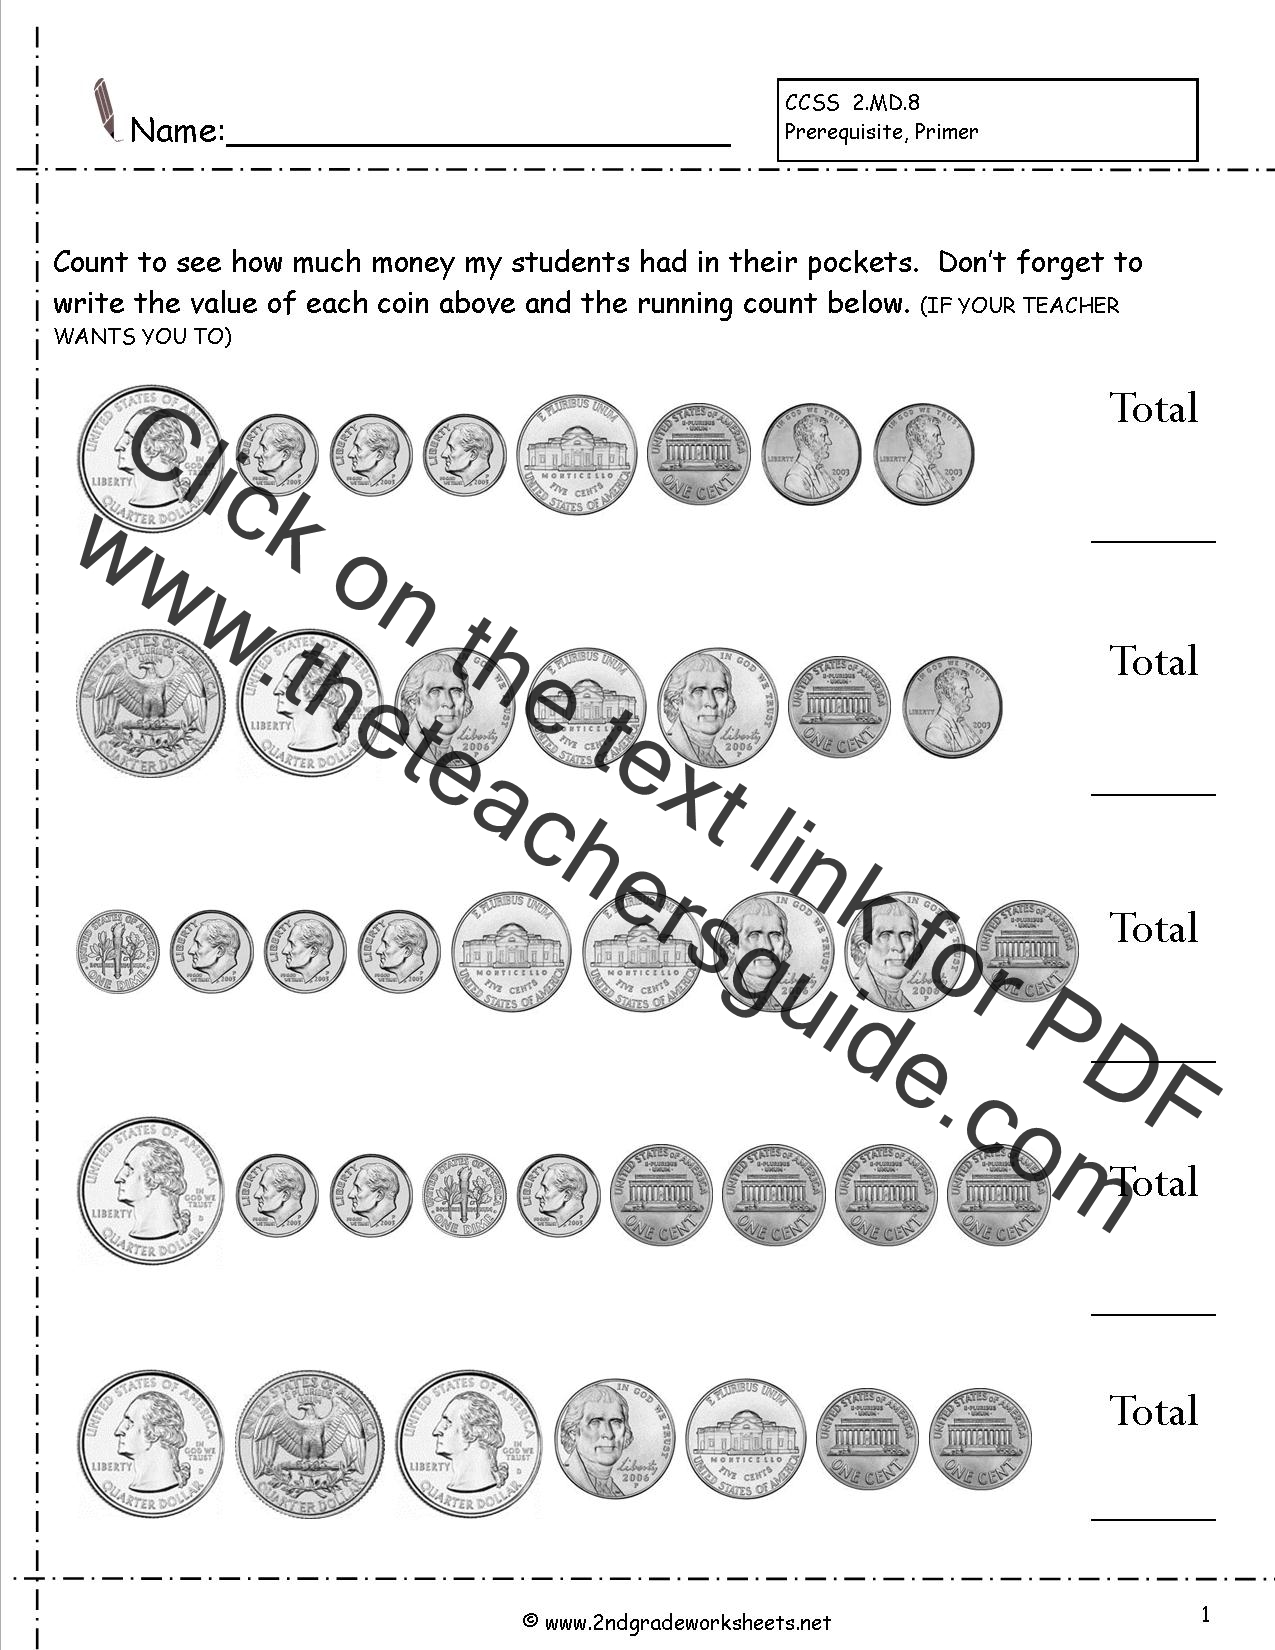 math worksheet : counting coins and money worksheets and printouts : Common Core Math Worksheets For 2nd Grade